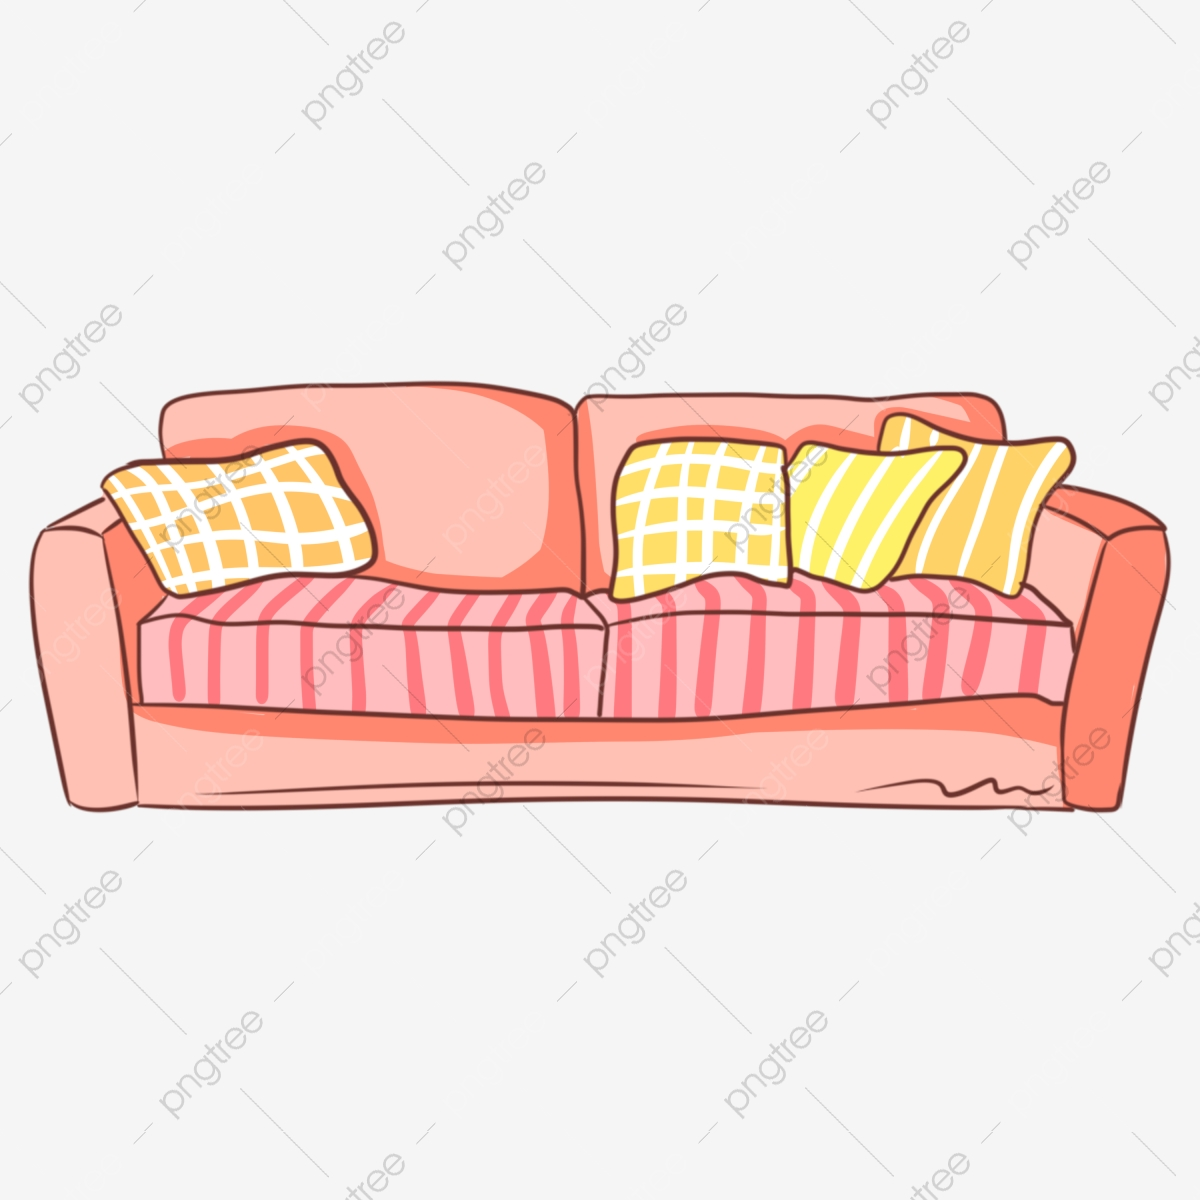 modern sofa png images vector and psd files free download on pngtree https pngtree com freepng modern home double sofa 4694024 html